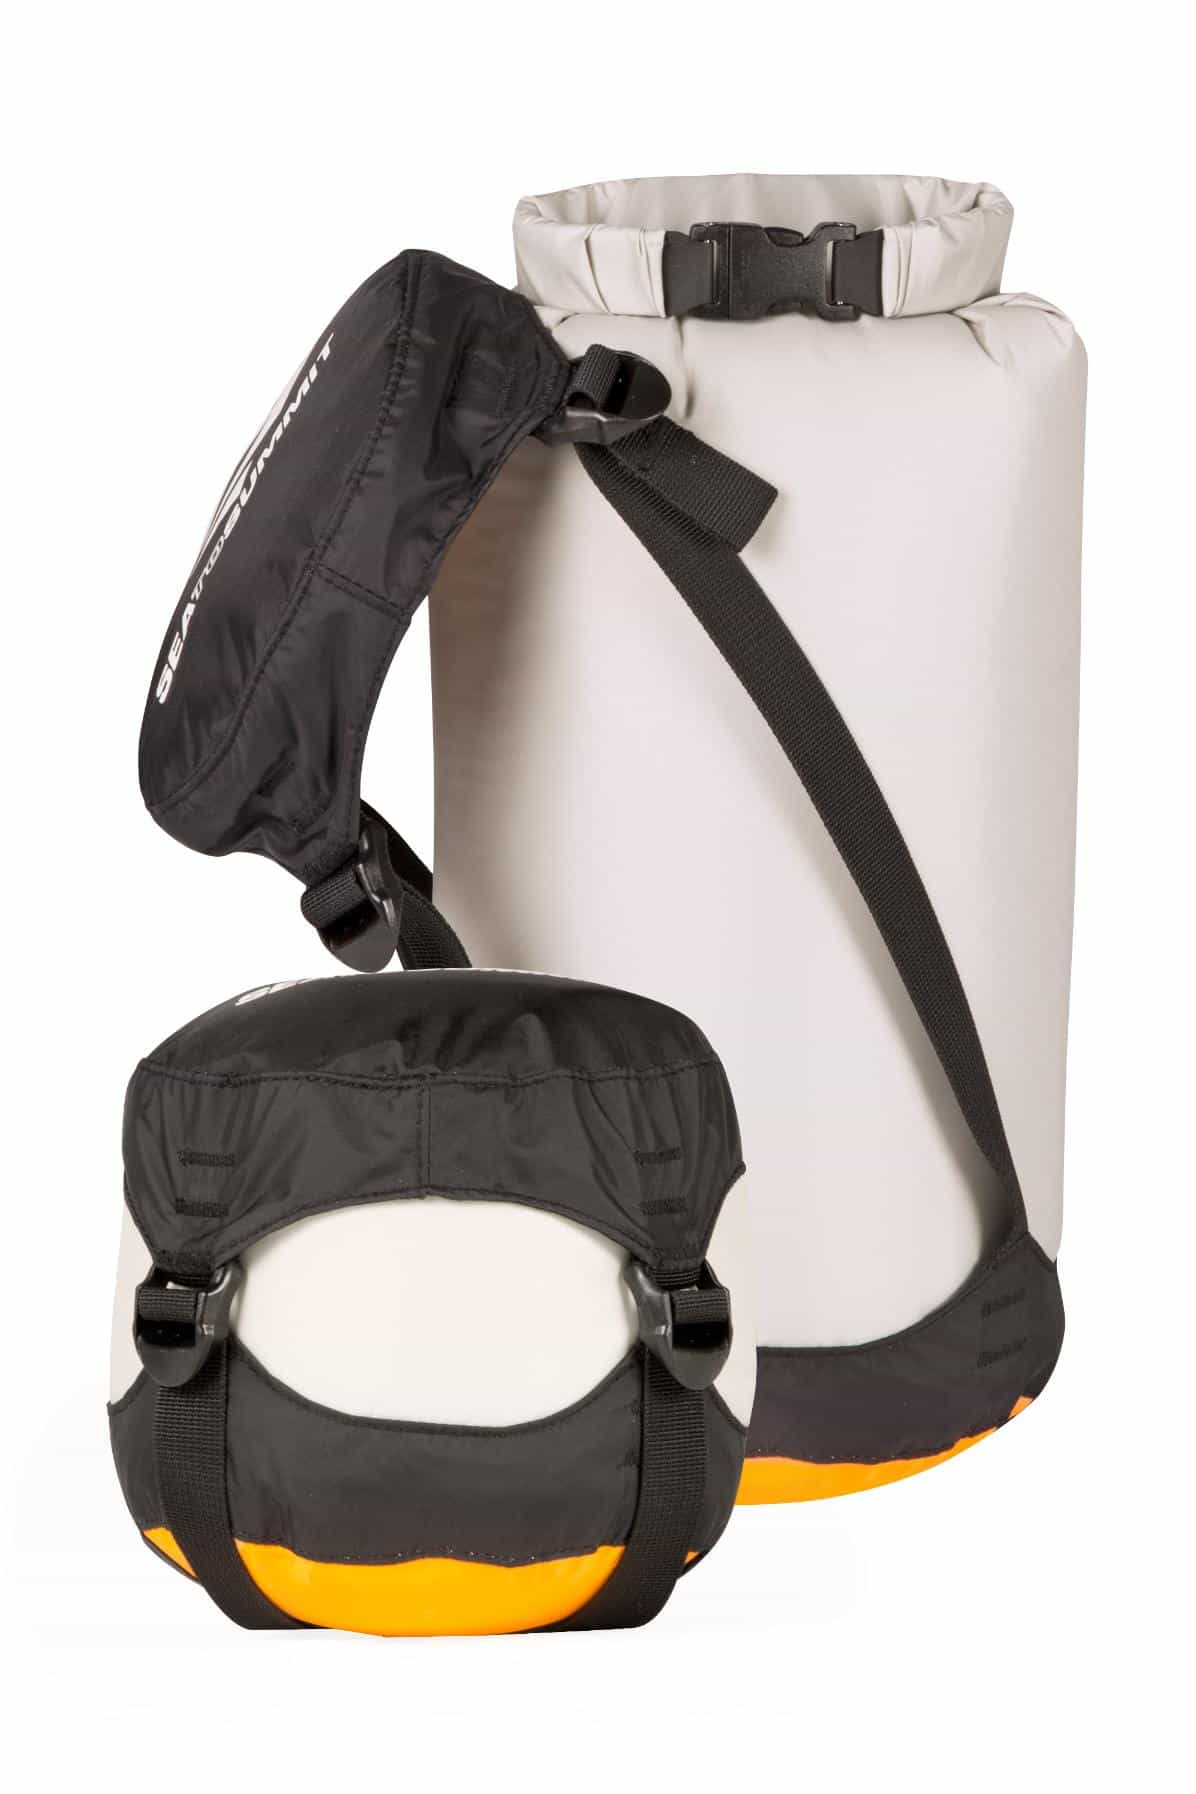 Sea to Summit-eVent Comp Dry Sack XS 6L